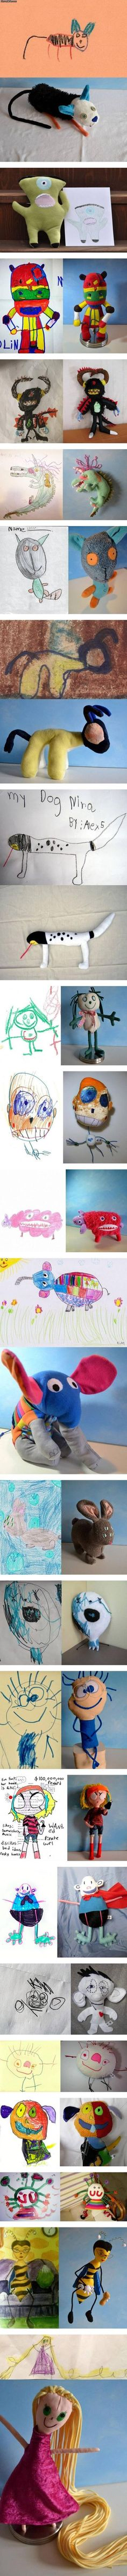 This company can turn your kids drawings into a real stuffed animal. I love this idea so much